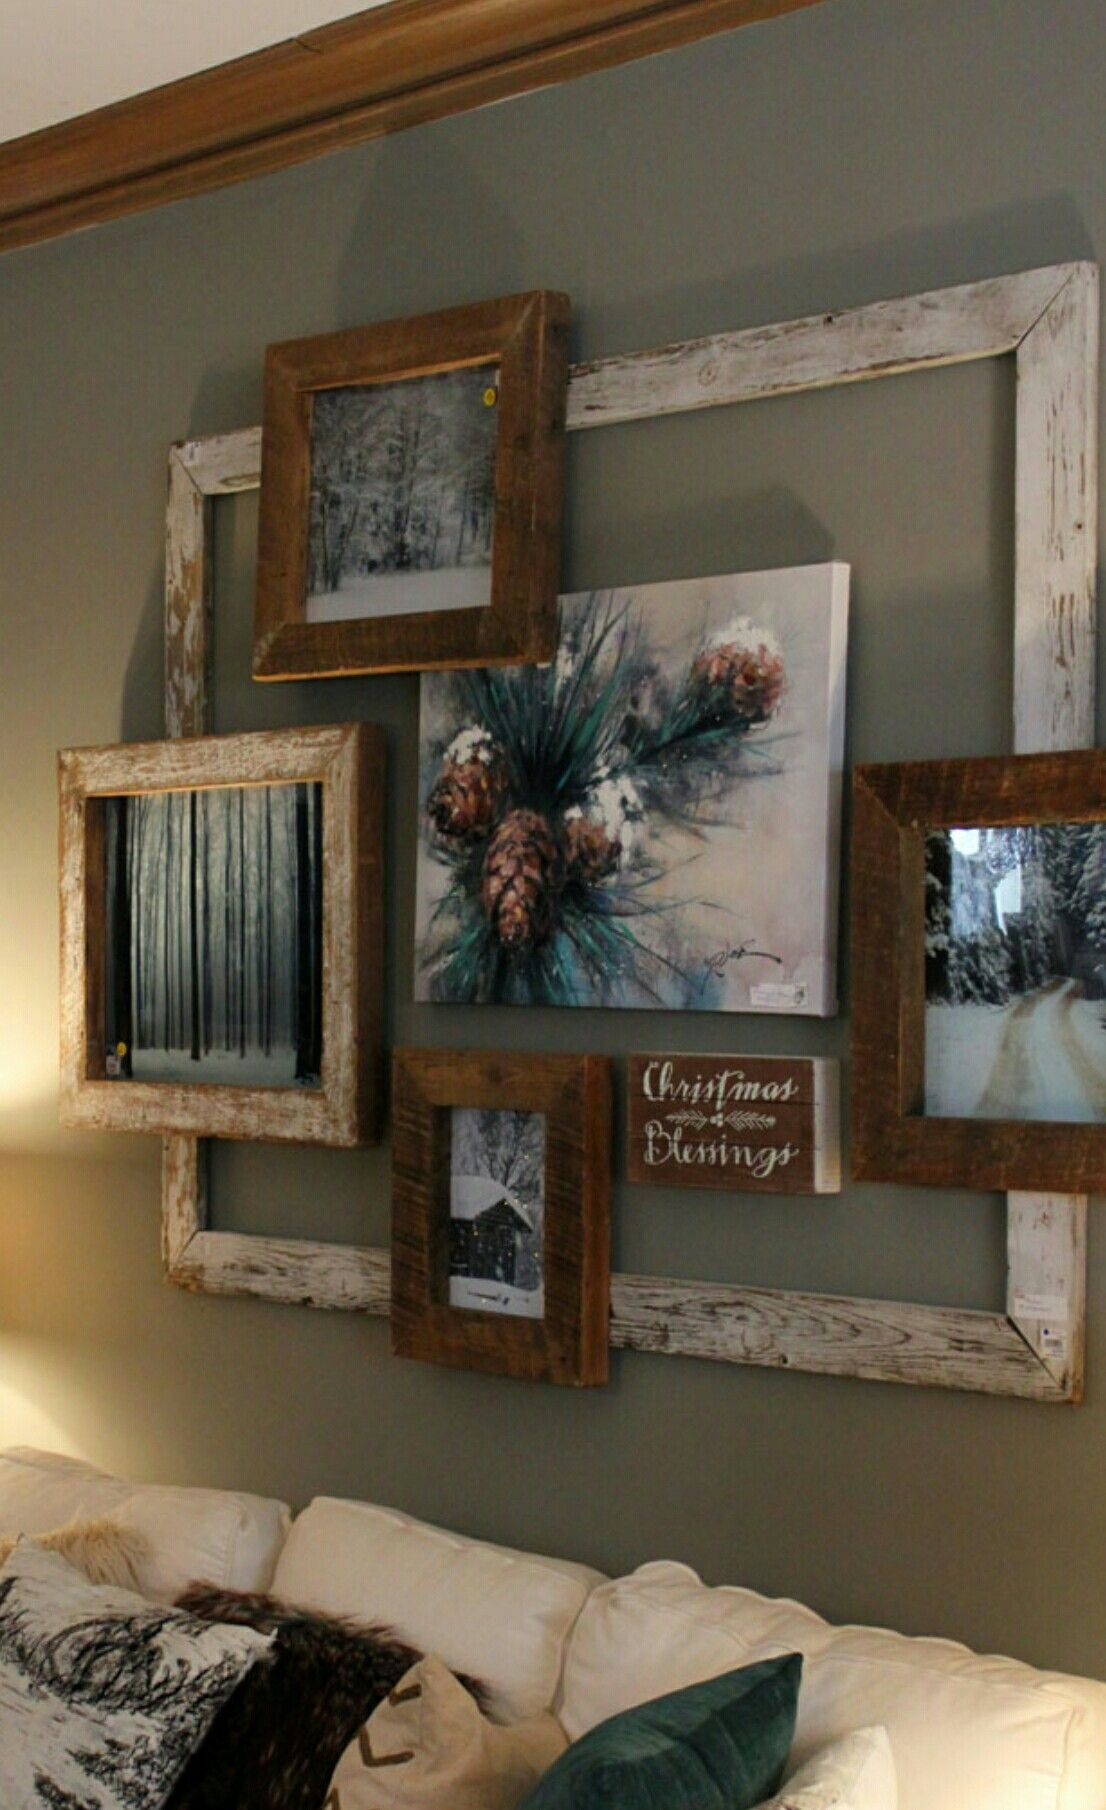 Collage of old frames makes a rustic u eye catching focal point in